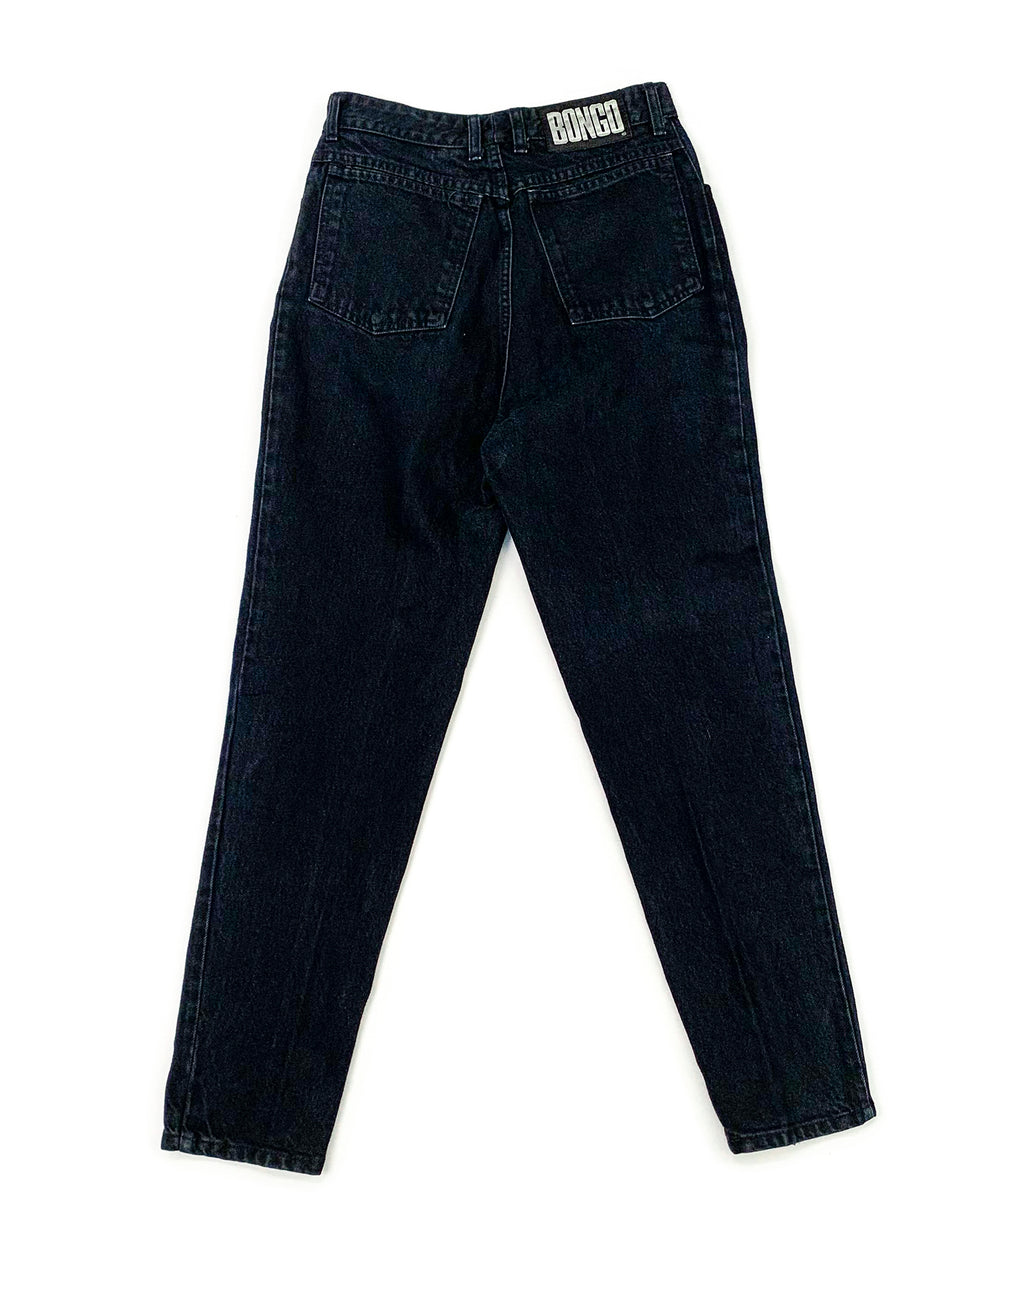 BONGO BLACK INDIGO HIGH WAIST JEANS